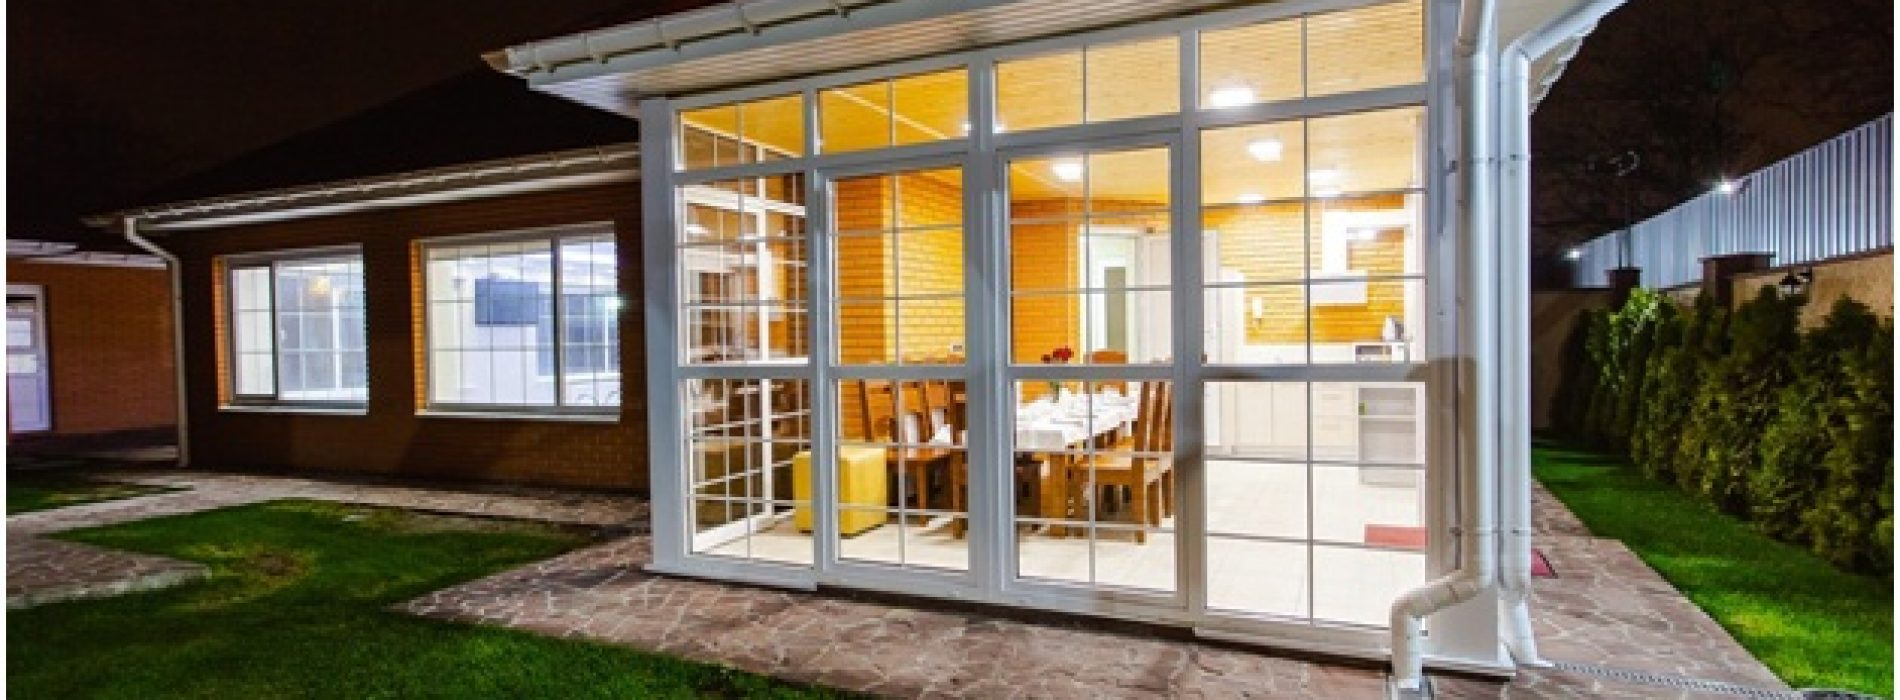 How To Get The Most ROI When Adding A Sunroom To Your Home